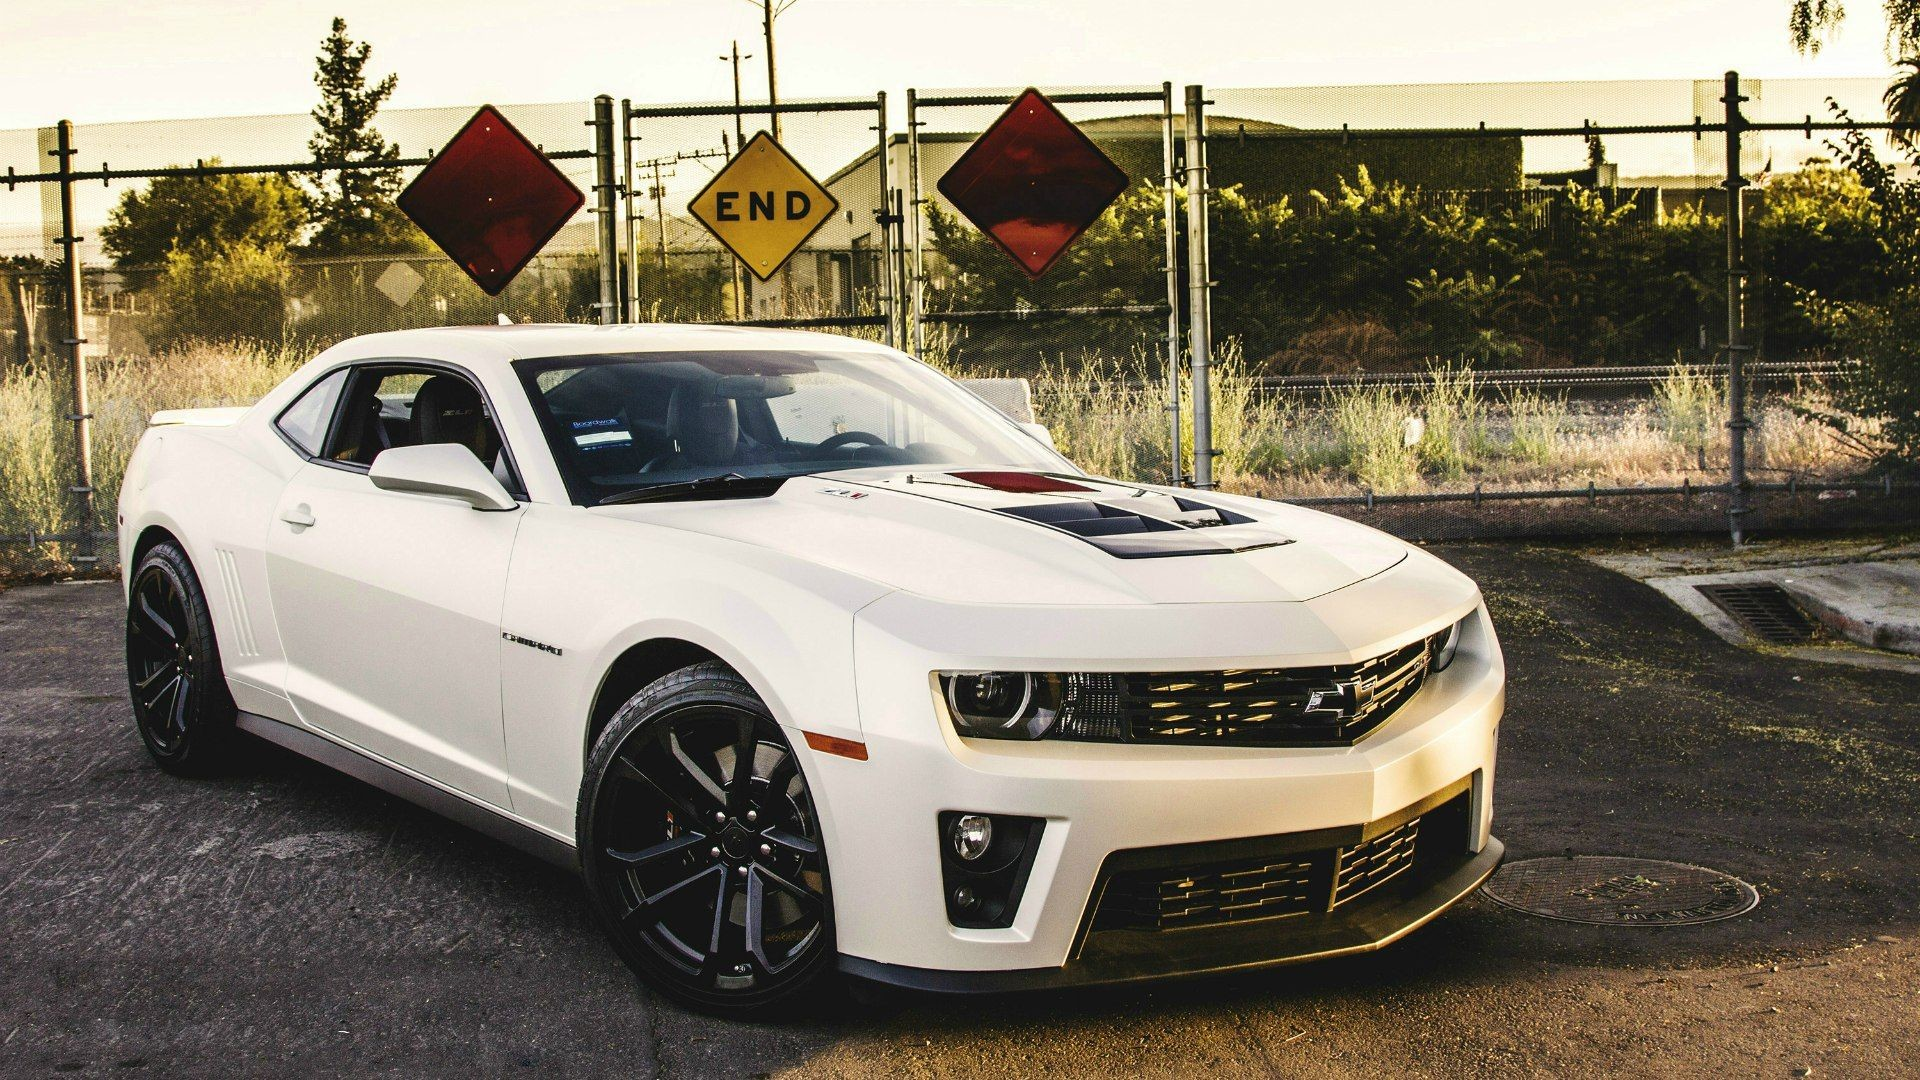 1920x1080 White Chevrolet Camaro ZL1 wallpapers and images - wallpapers .